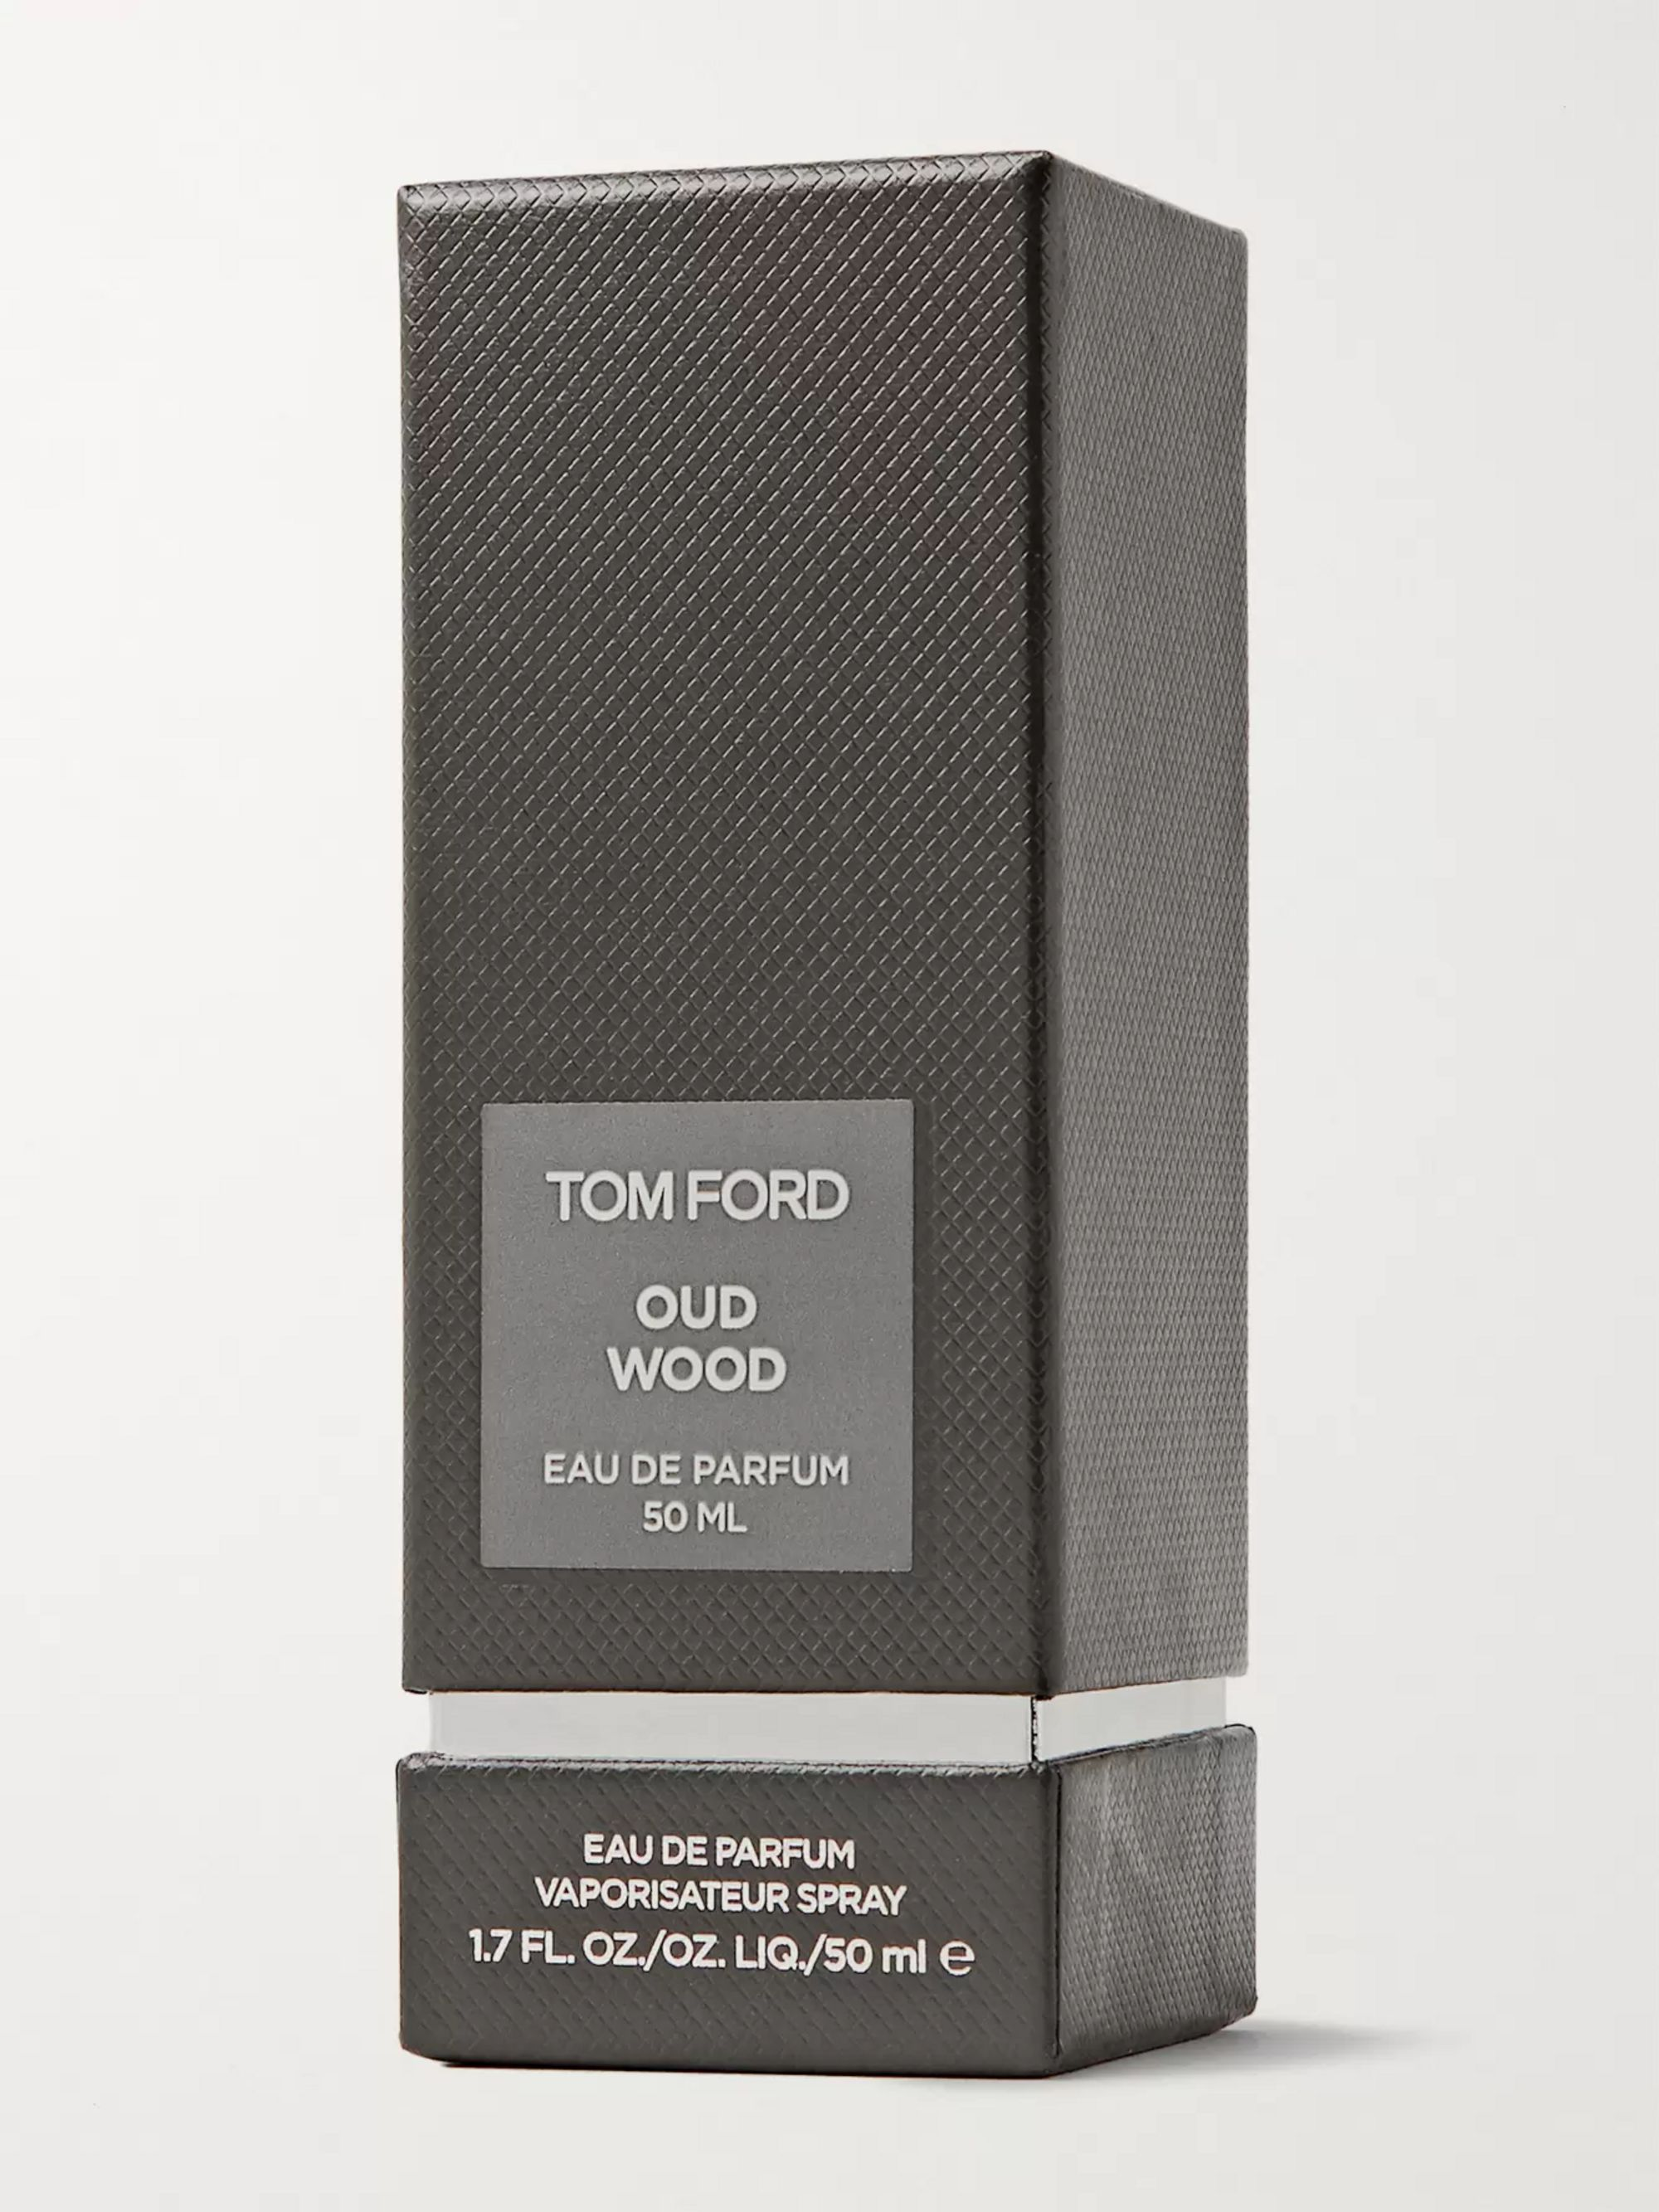 TOM FORD BEAUTY Oud Wood Eau De Parfum - Rare Oud Wood, Sandalwood & Chinese Pepper, 50ml